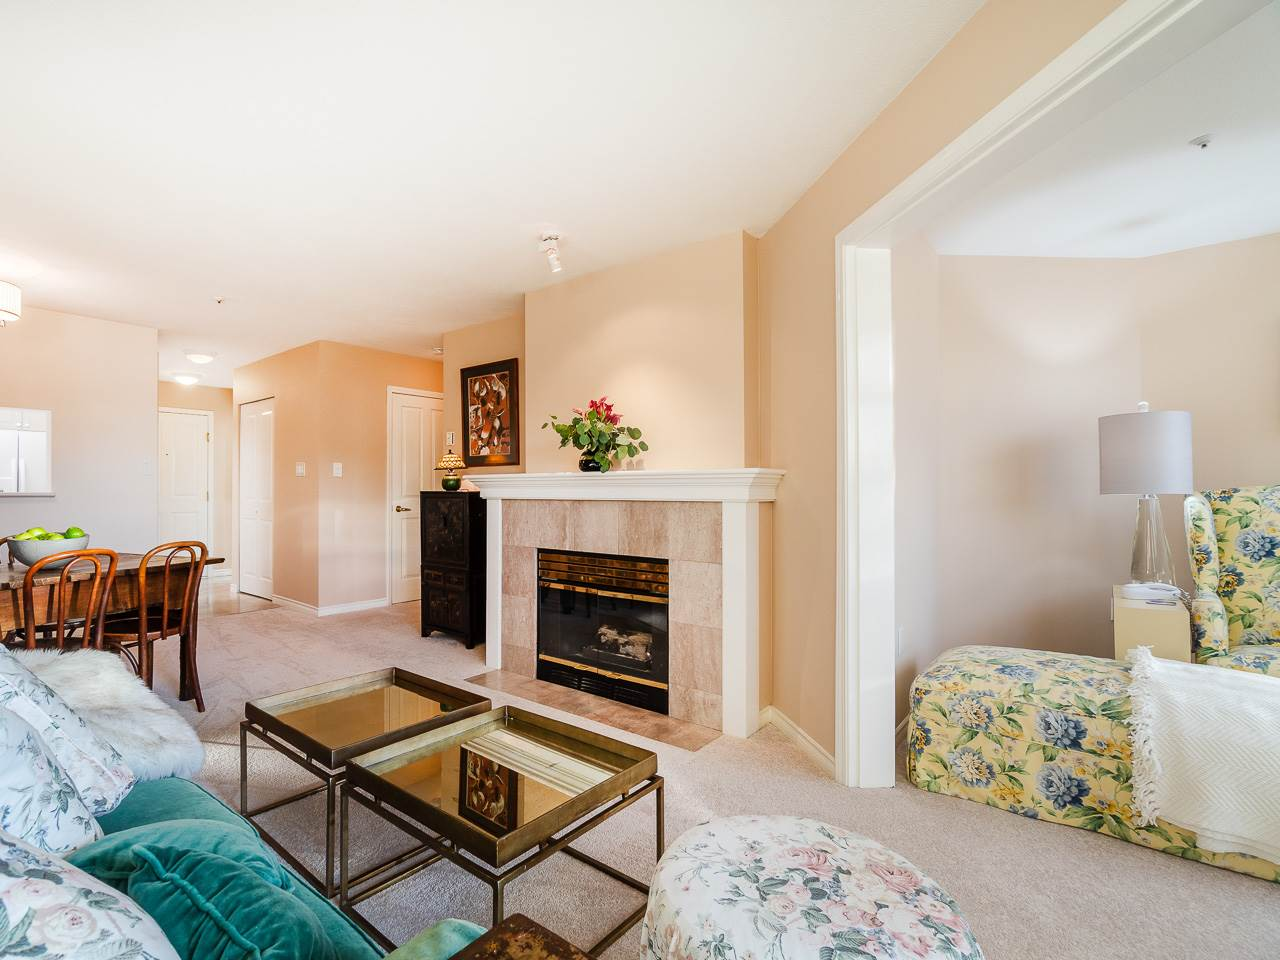 306 2105 W 42ND AVENUE - Kerrisdale Apartment/Condo for sale, 1 Bedroom (R2511504) - #10